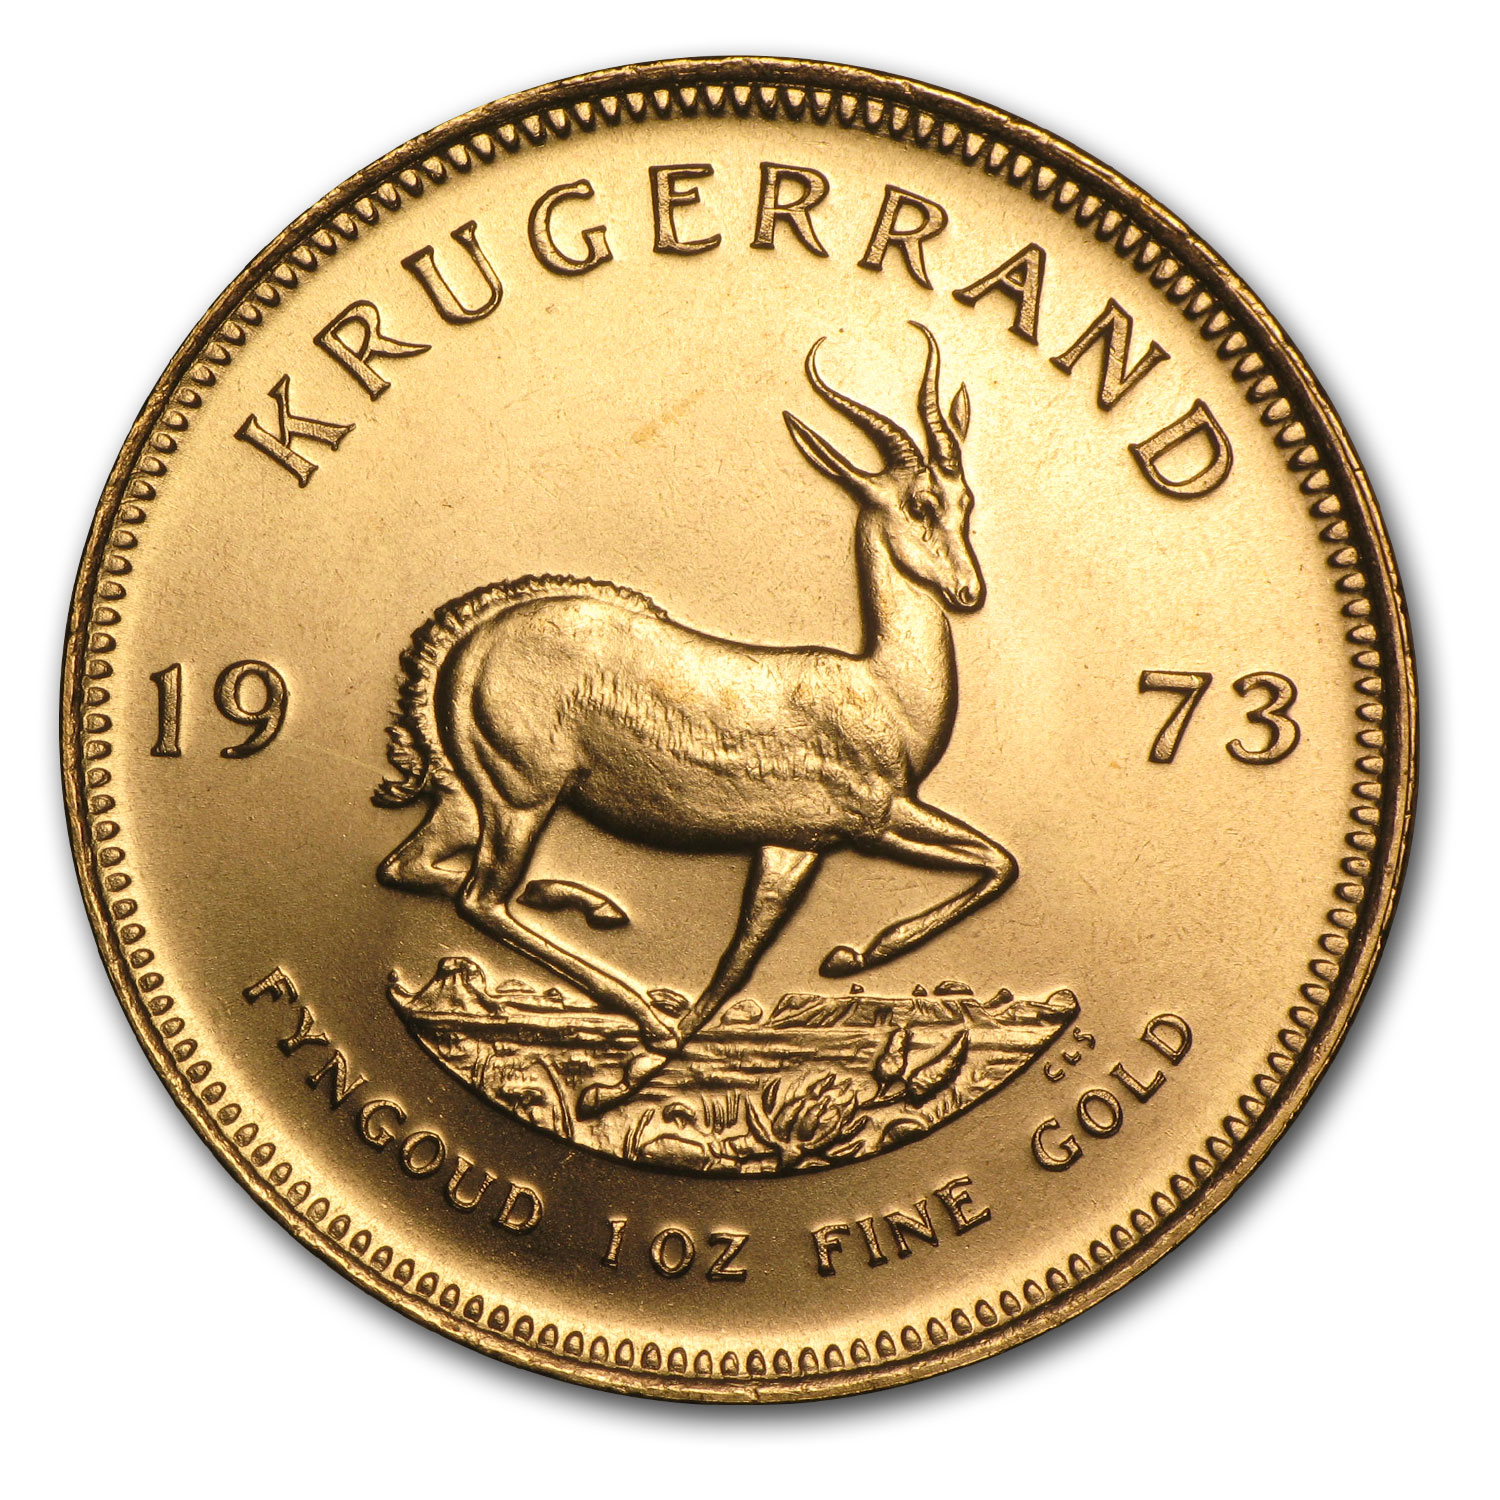 1973 South Africa 1 oz Gold Krugerrand